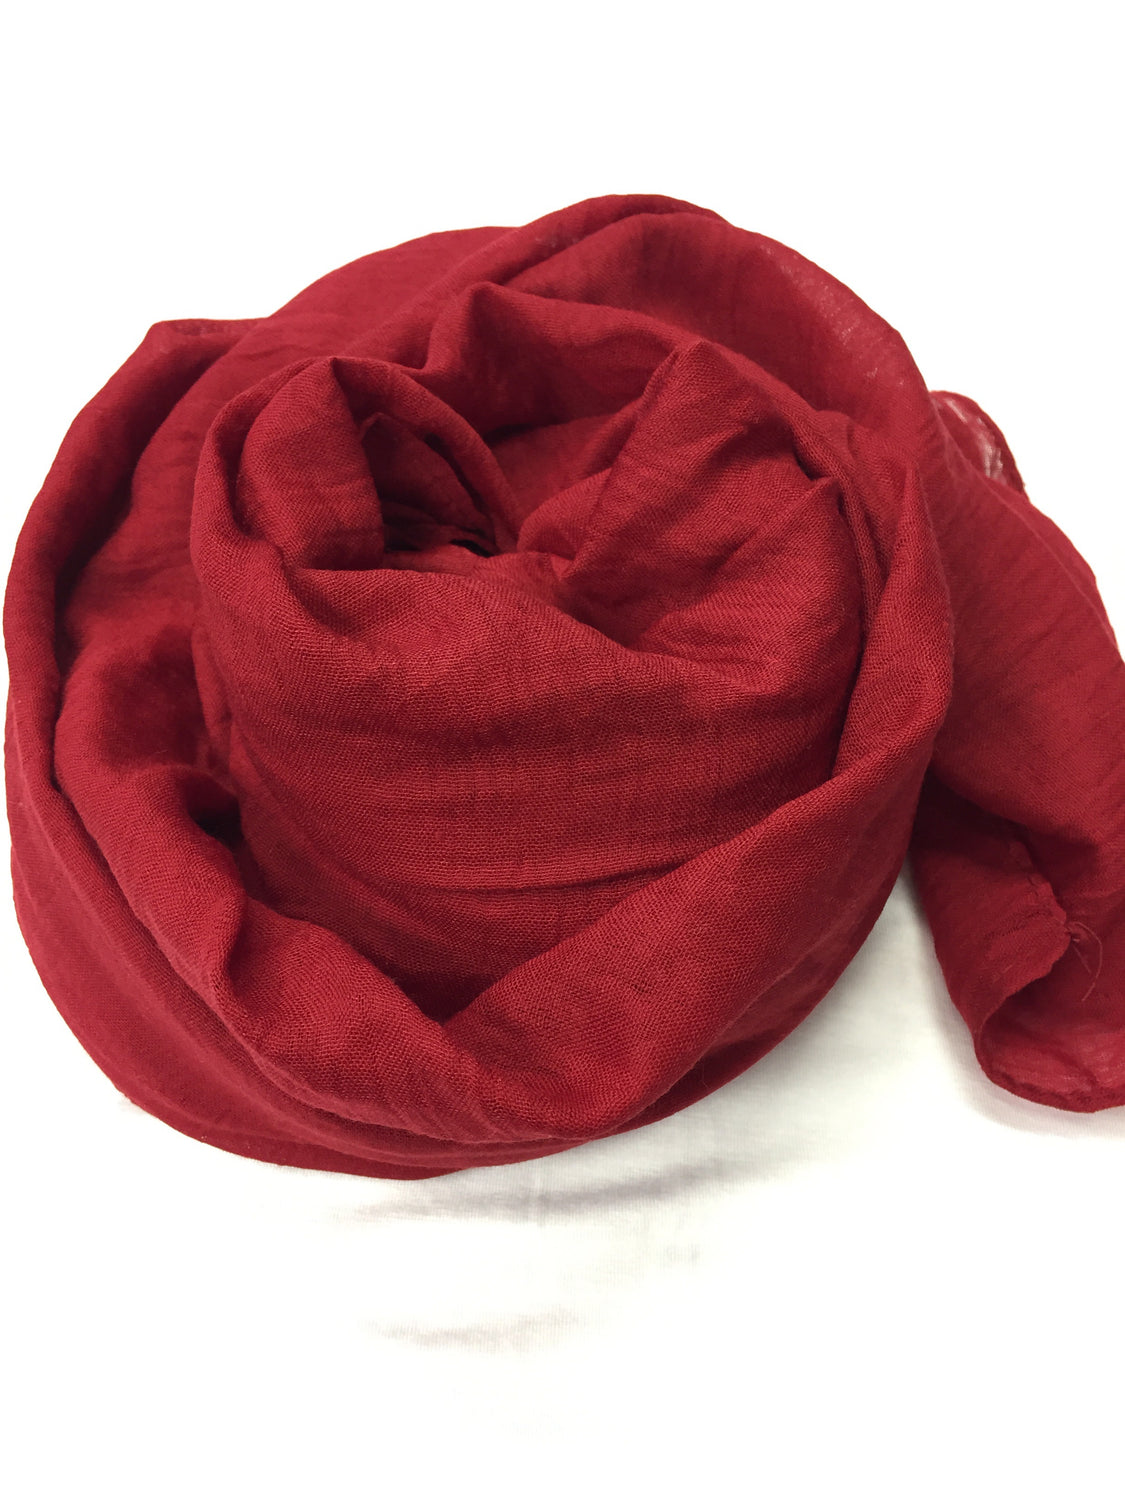 Crinkle Cotton Hijab - Dark Red